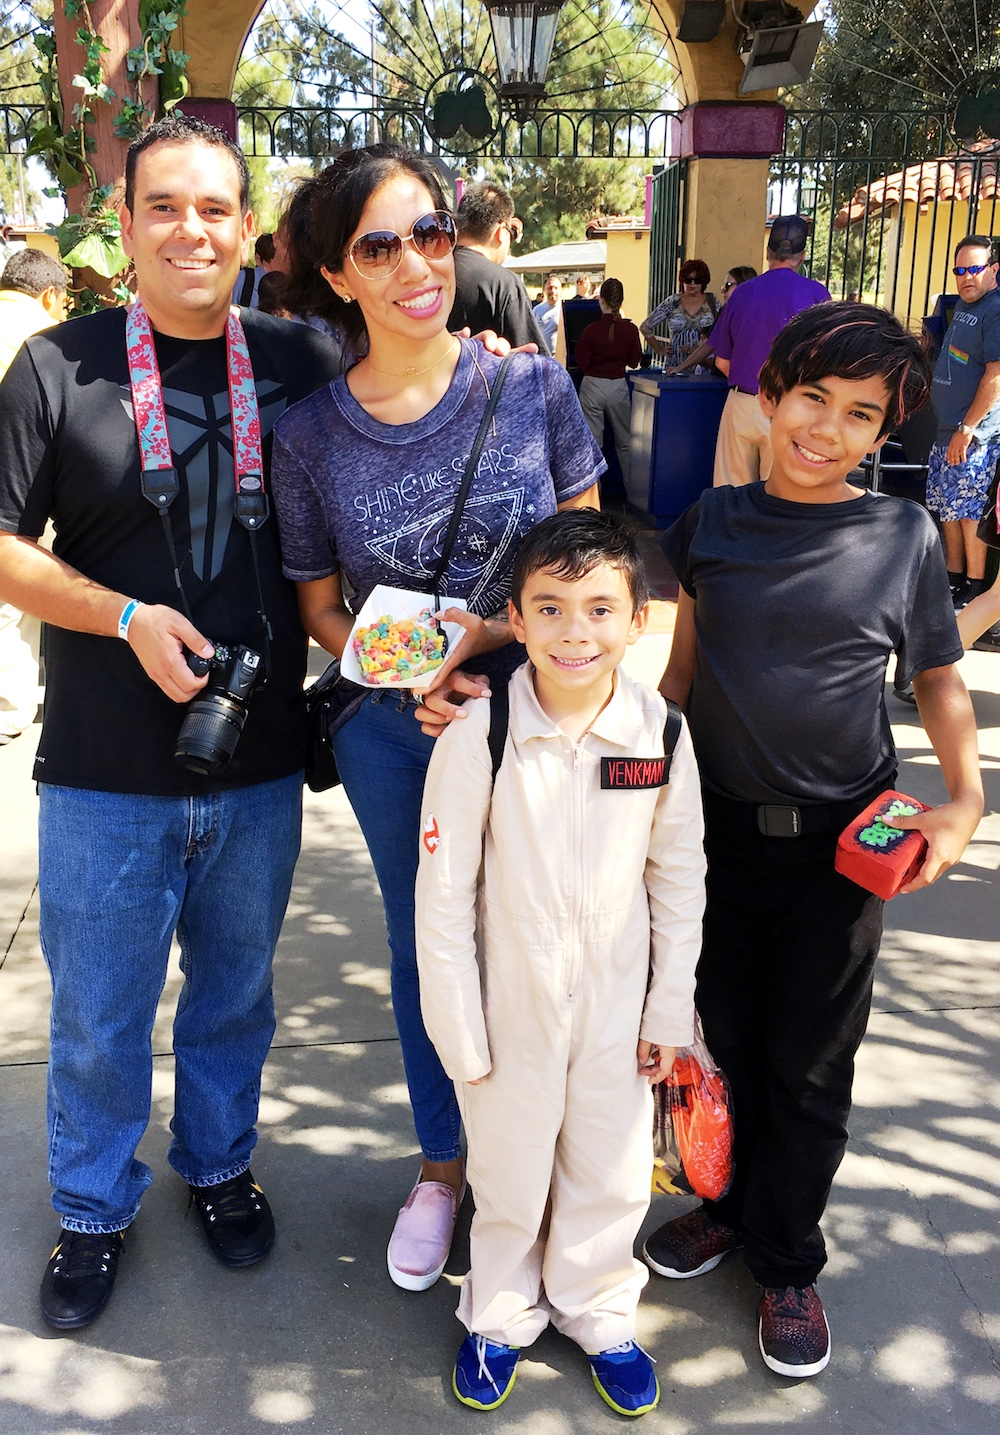 Pattie Cordova and family at Knott's Spooky Farm - livingmividaloca.com